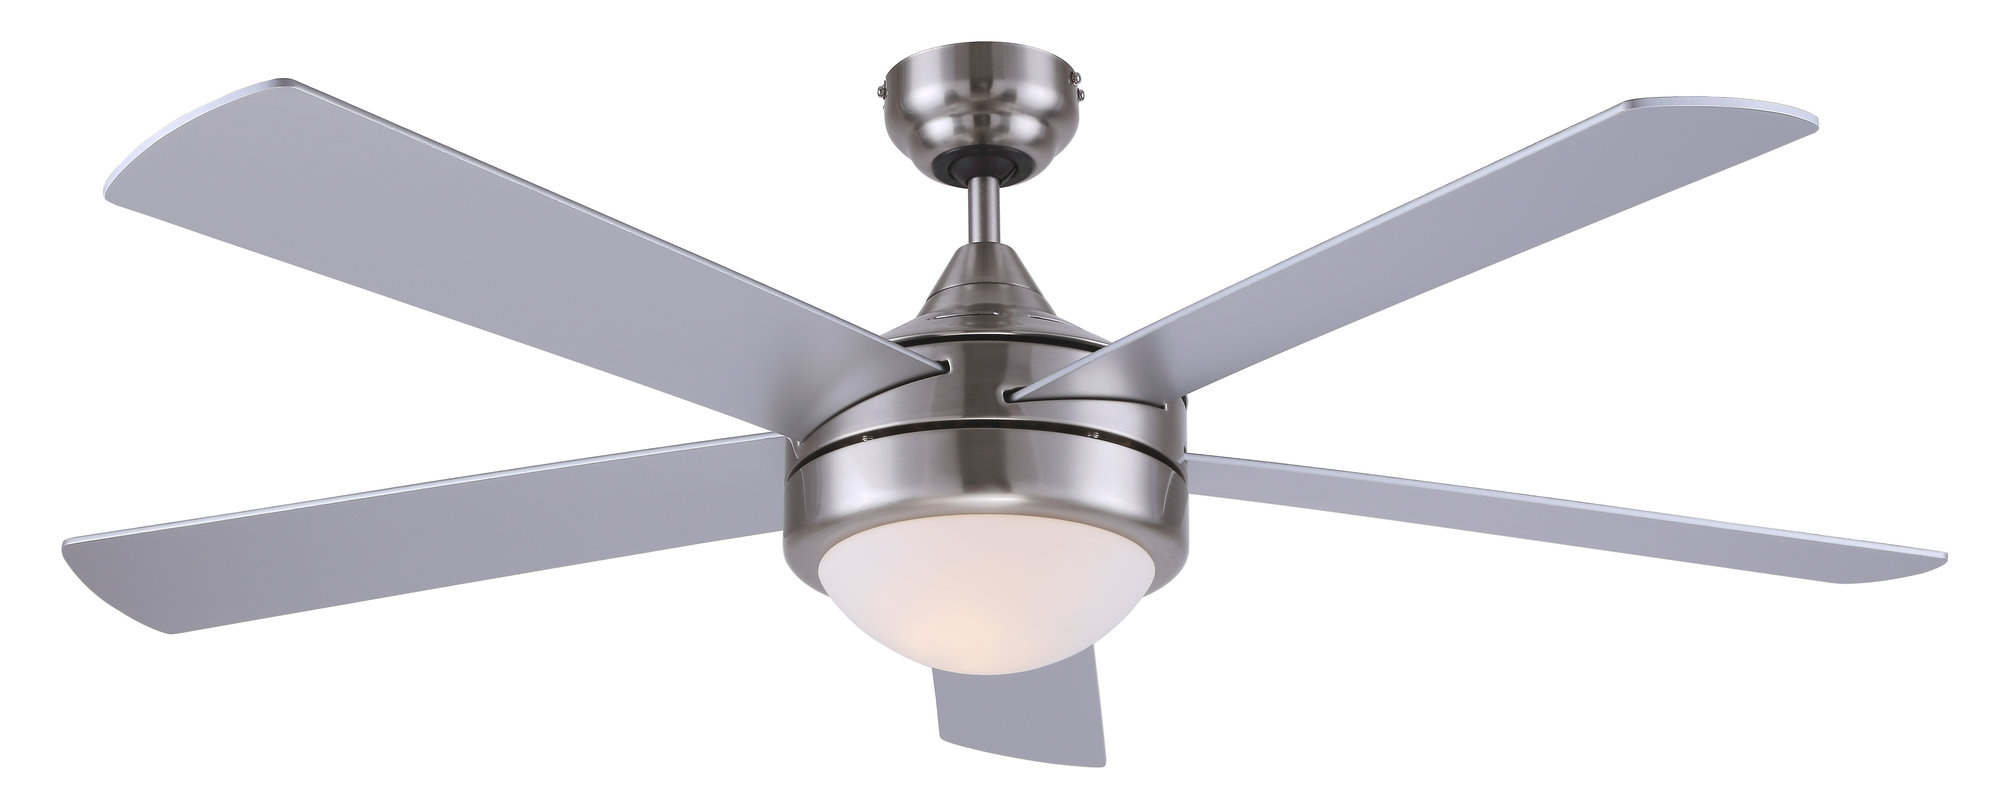 Most Popular Kalea 5 Blade Outdoor Ceiling Fans Regarding Details About Ivy Bronx Butterworth 5 Blade Ceiling Fan With Remote (View 14 of 20)